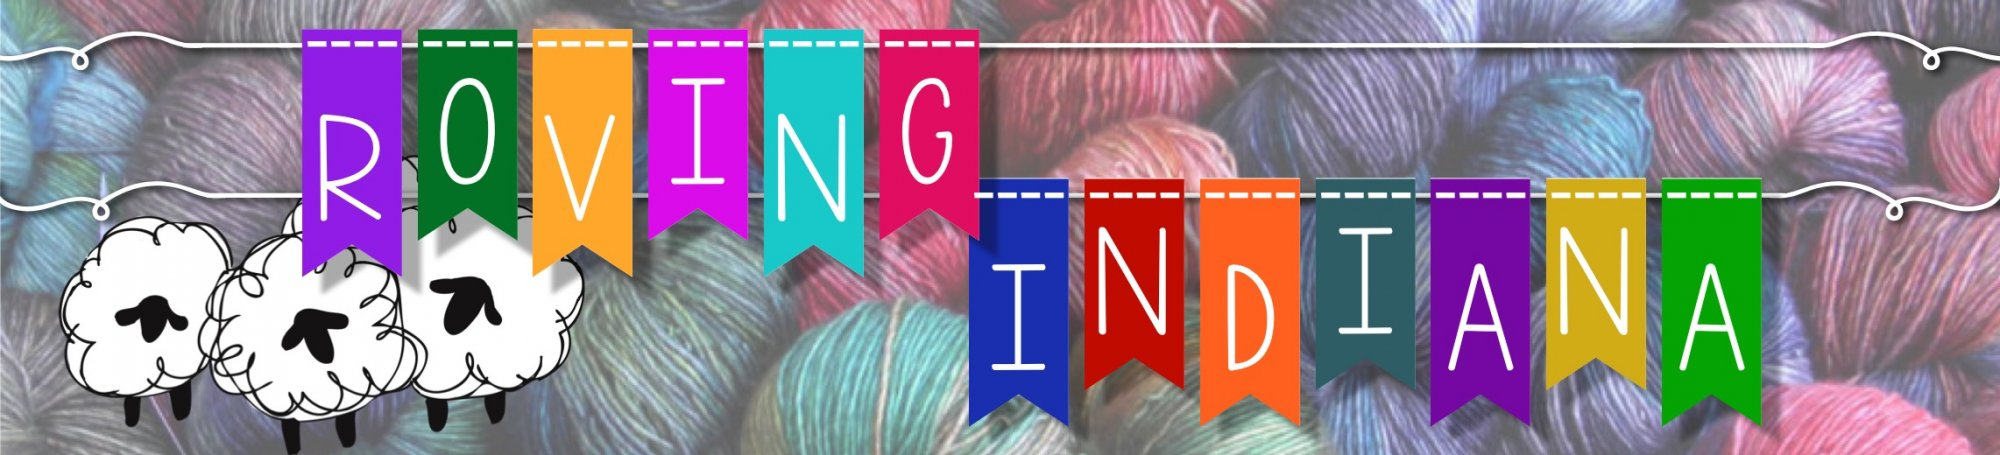 Roving Indiana Yarn Crawl